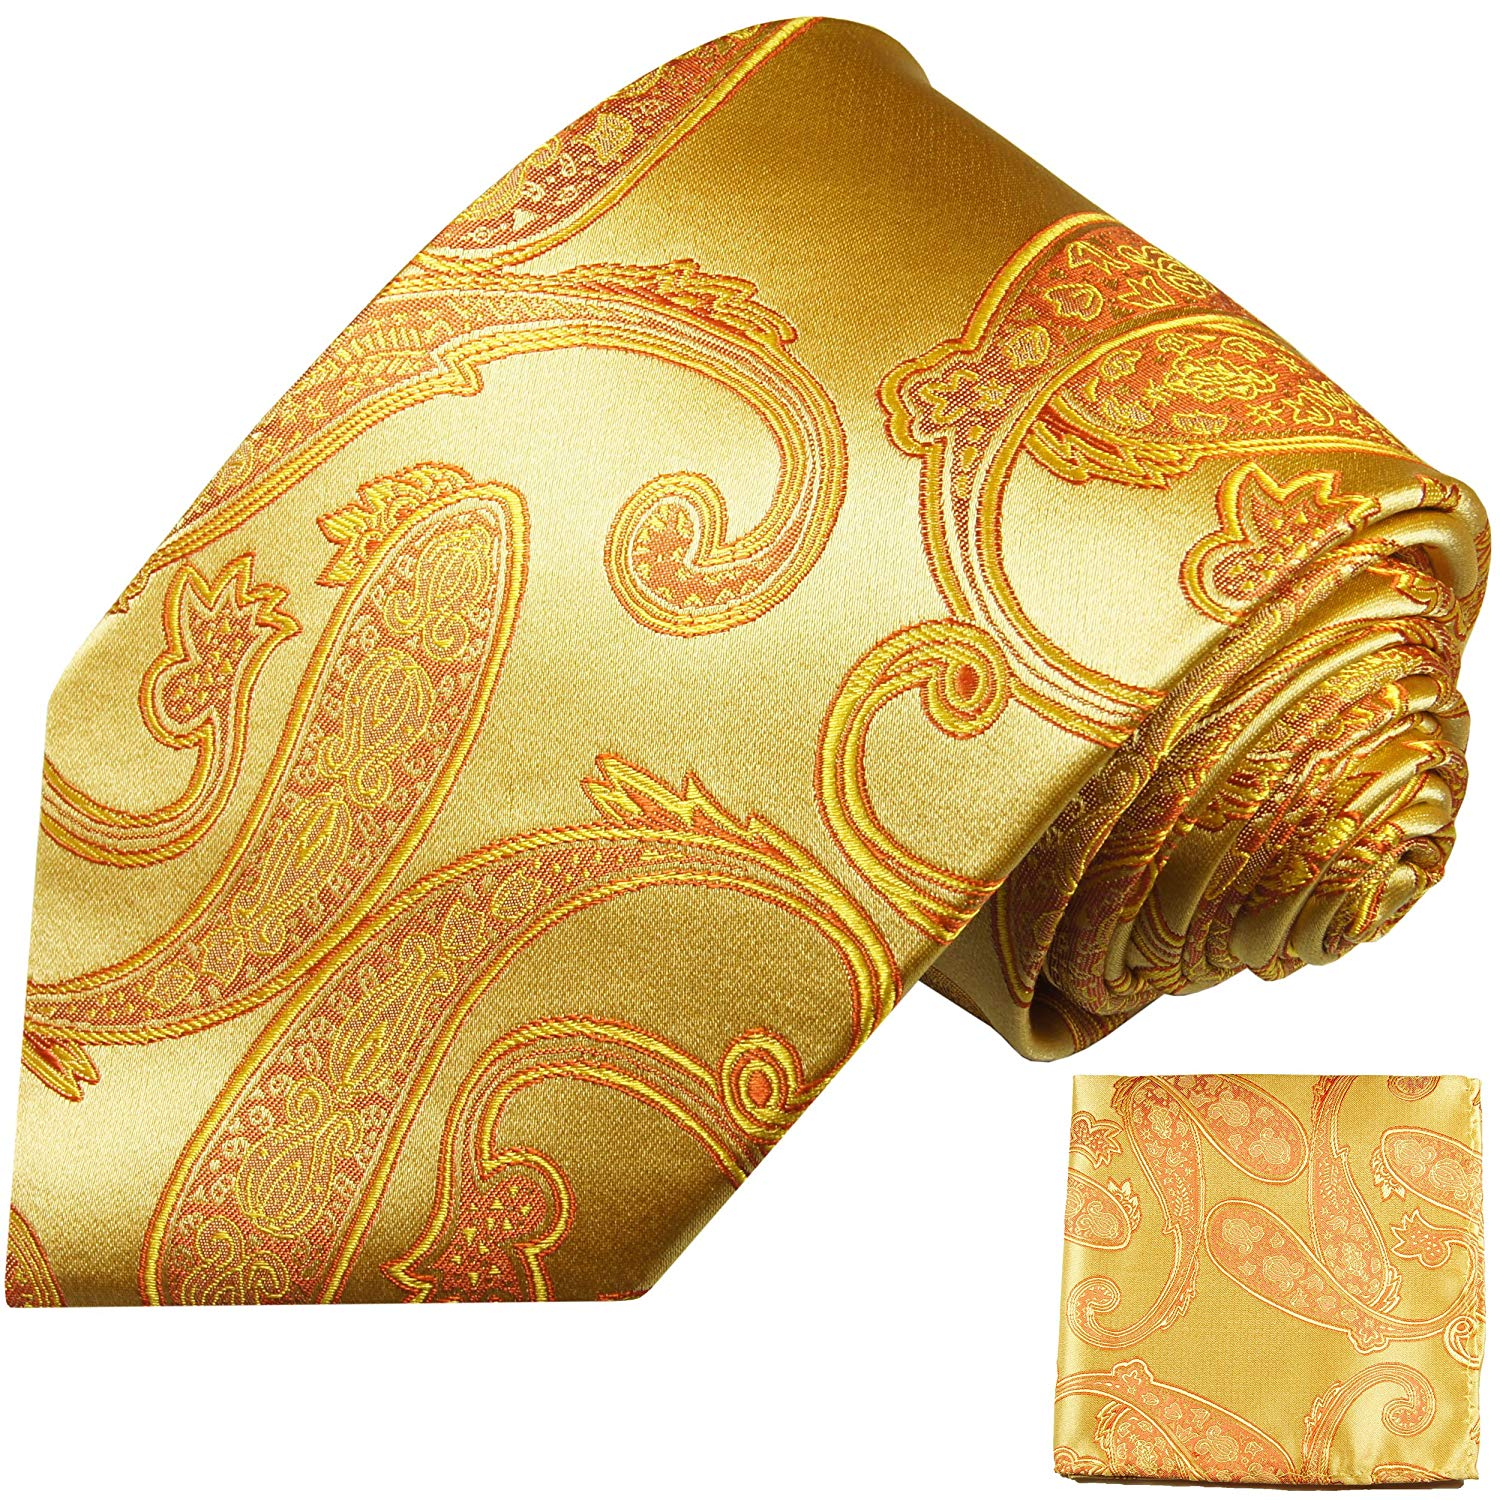 15a701583a33 Cheap Silk Gold Tie, find Silk Gold Tie deals on line at Alibaba.com